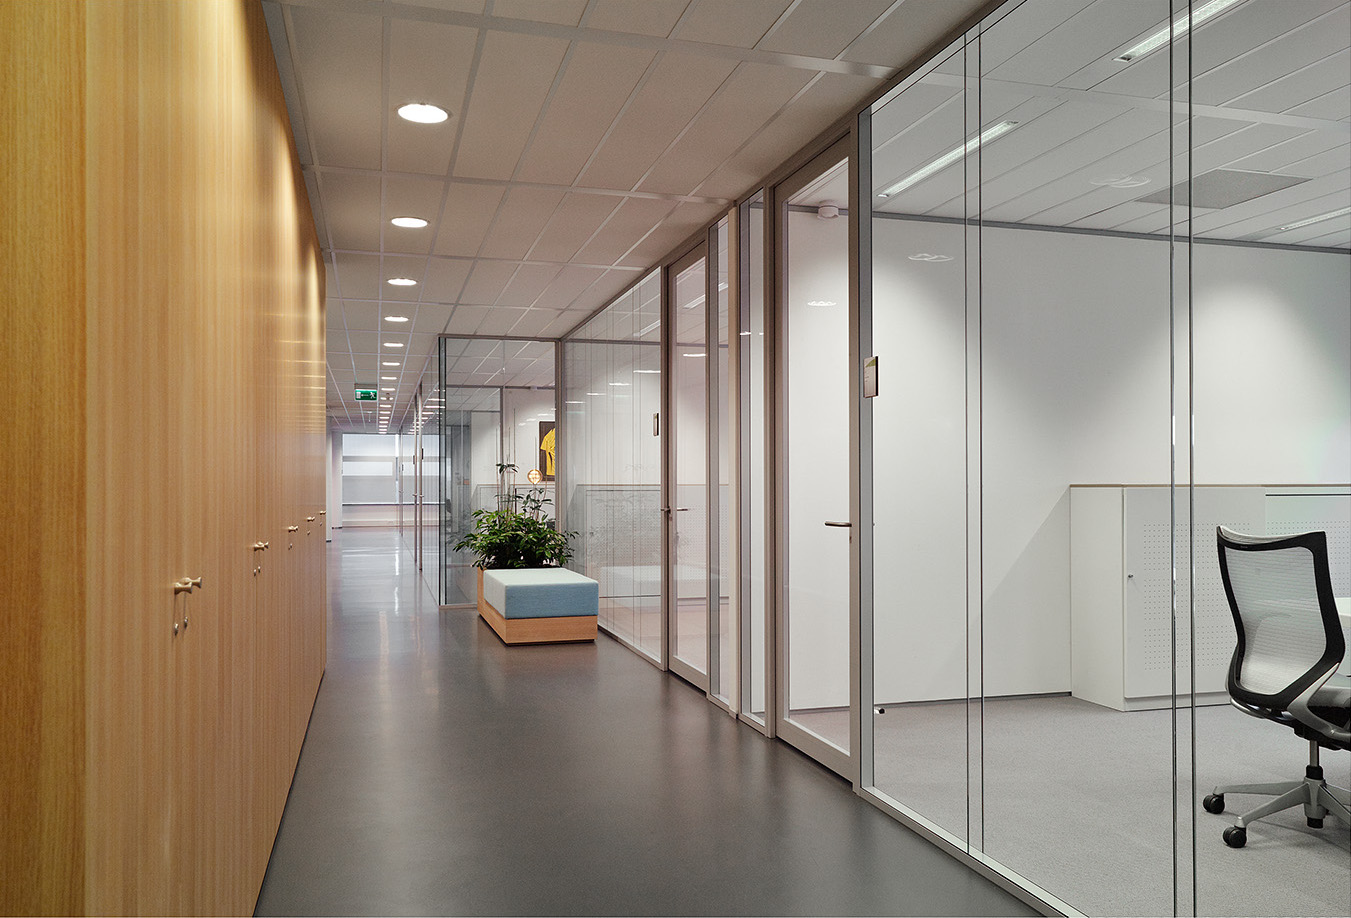 Corridor with on the right side IQ-Structural glass system wall with seamless panel joins.